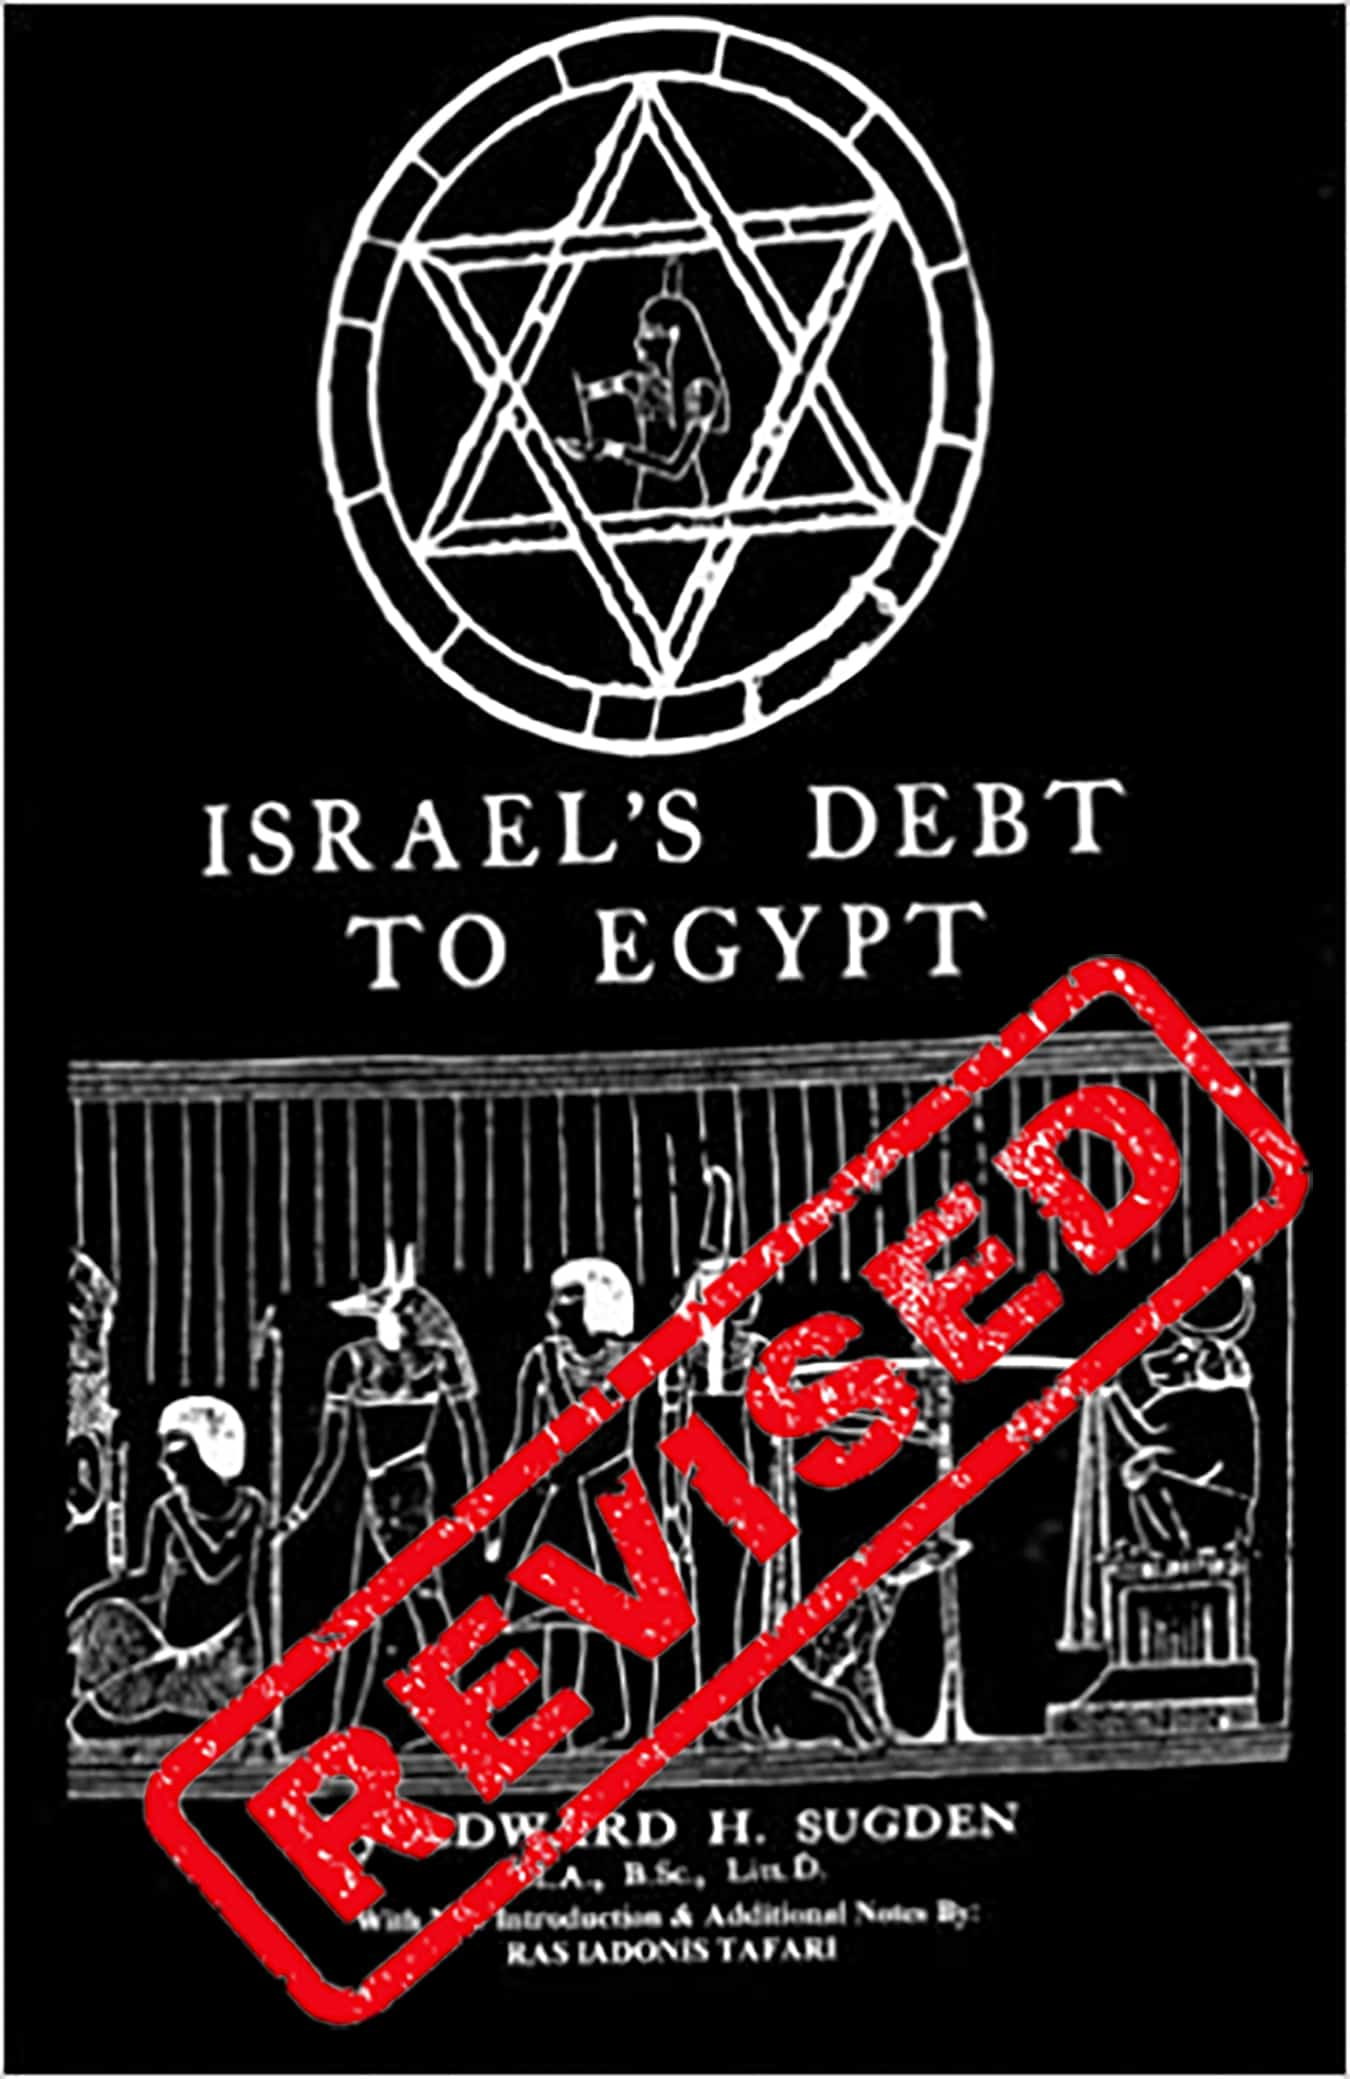 Israel's Debt To Egypt By Edward H. Sugden